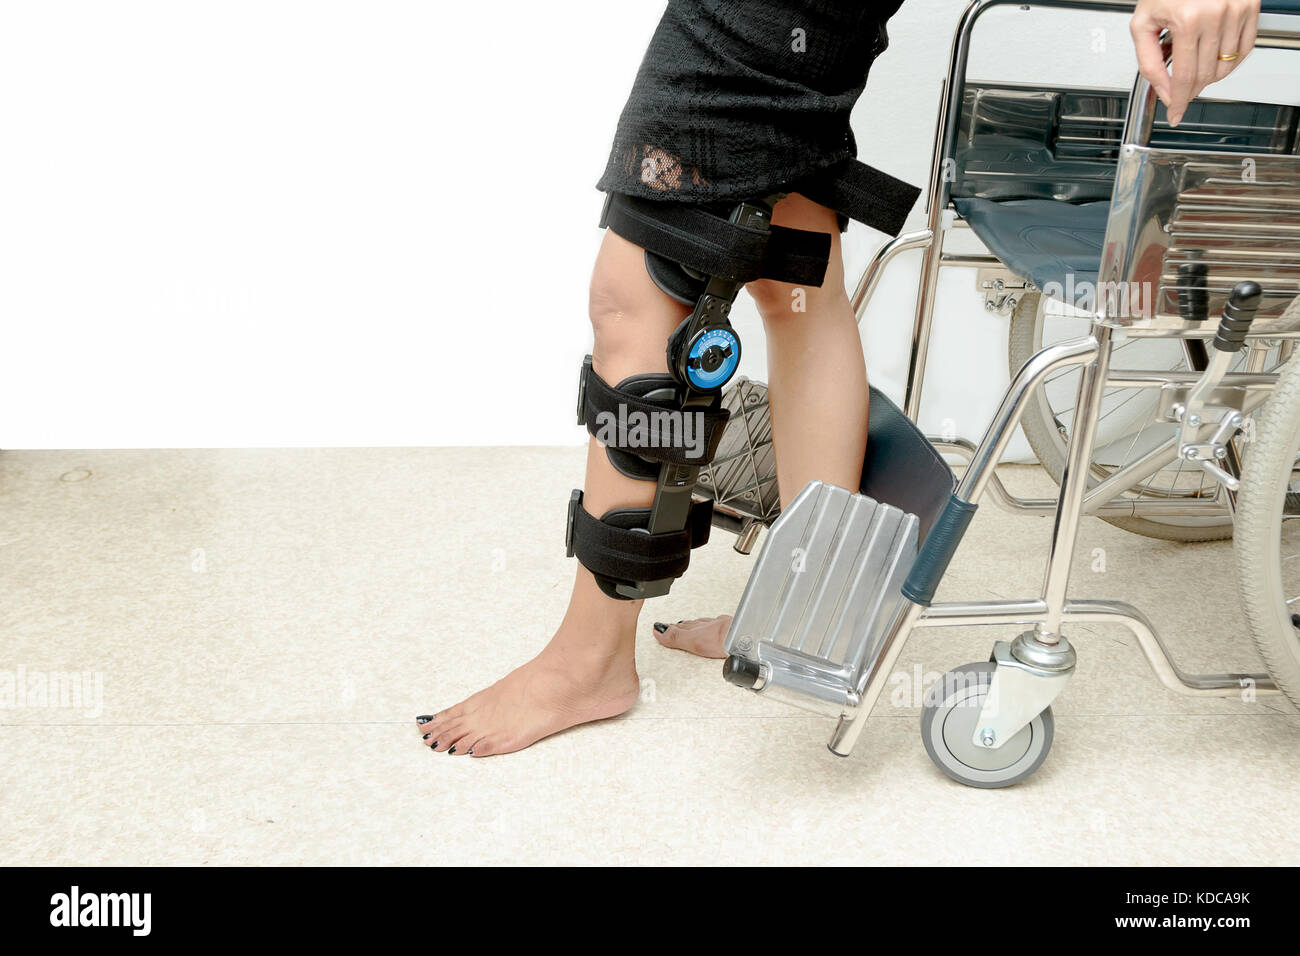 Patient on knee brace support try to walk training,Rehabilitation treatment - Stock Image